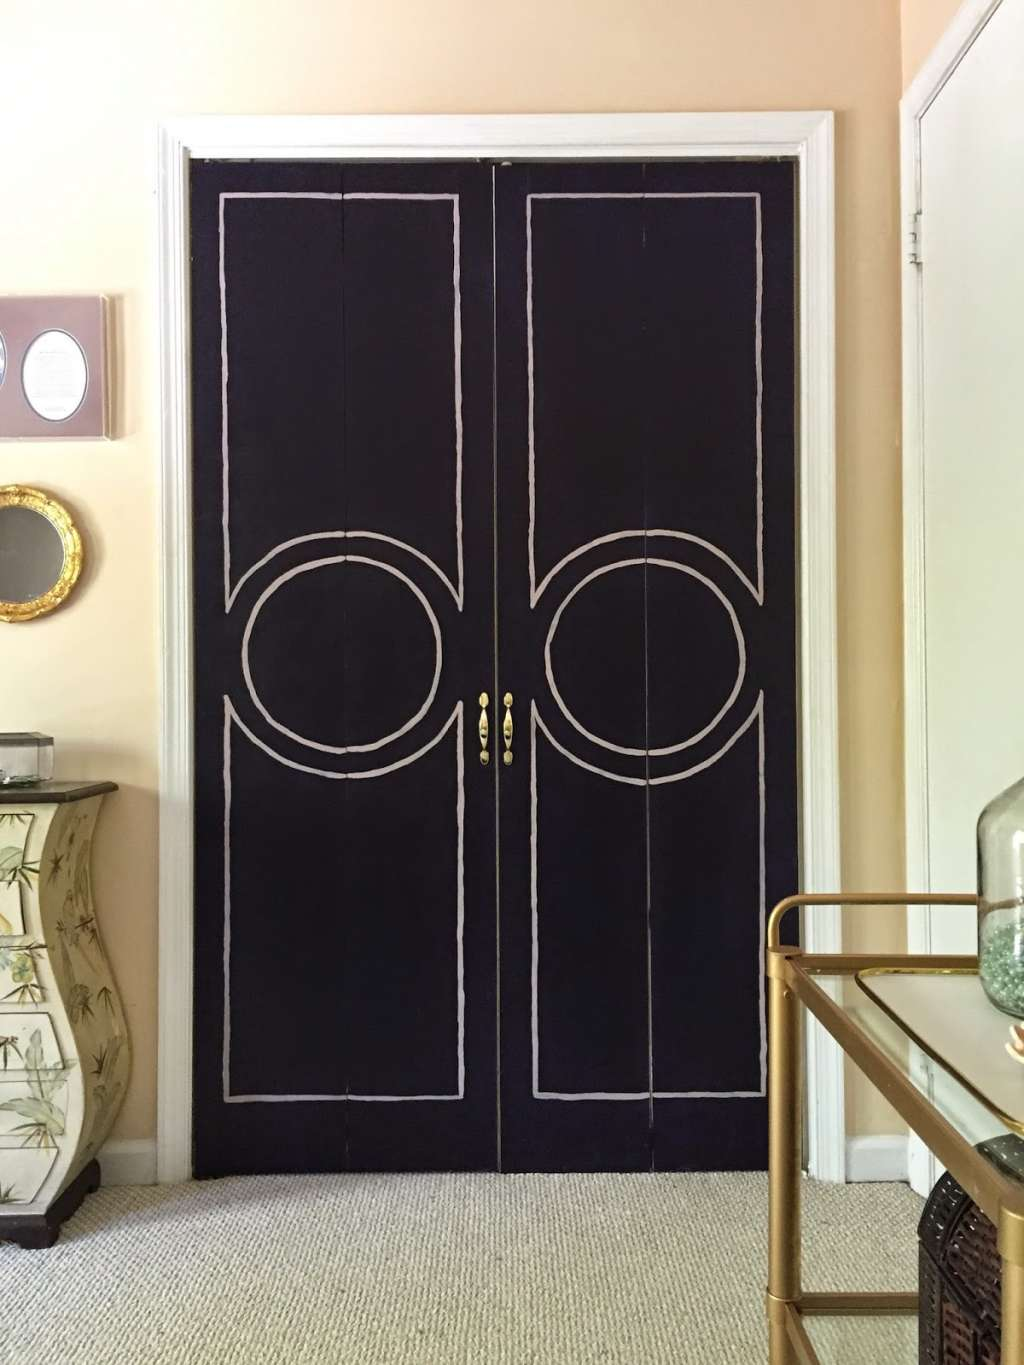 Closet Door Diy Projects That Look Like A Million Bucks Apartment